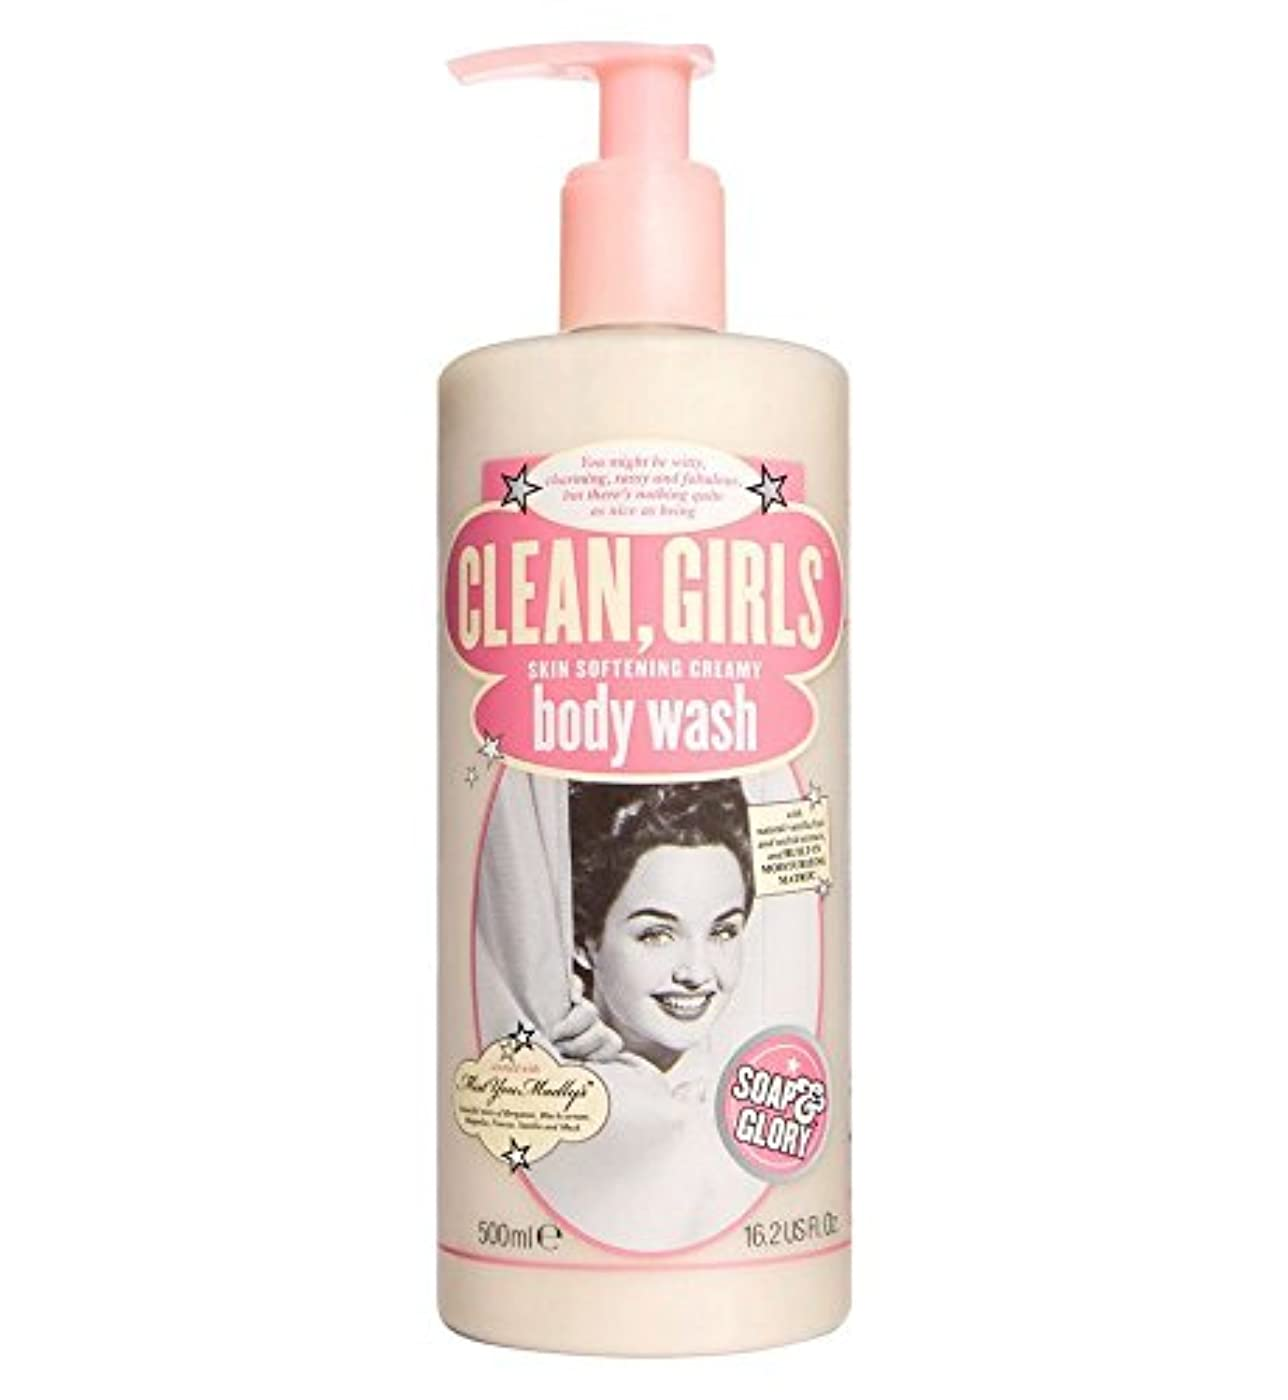 シリンダーバンク急速なSoap & Glory Clean Girls Body Wash 500ml by Soap & Glory [並行輸入品]